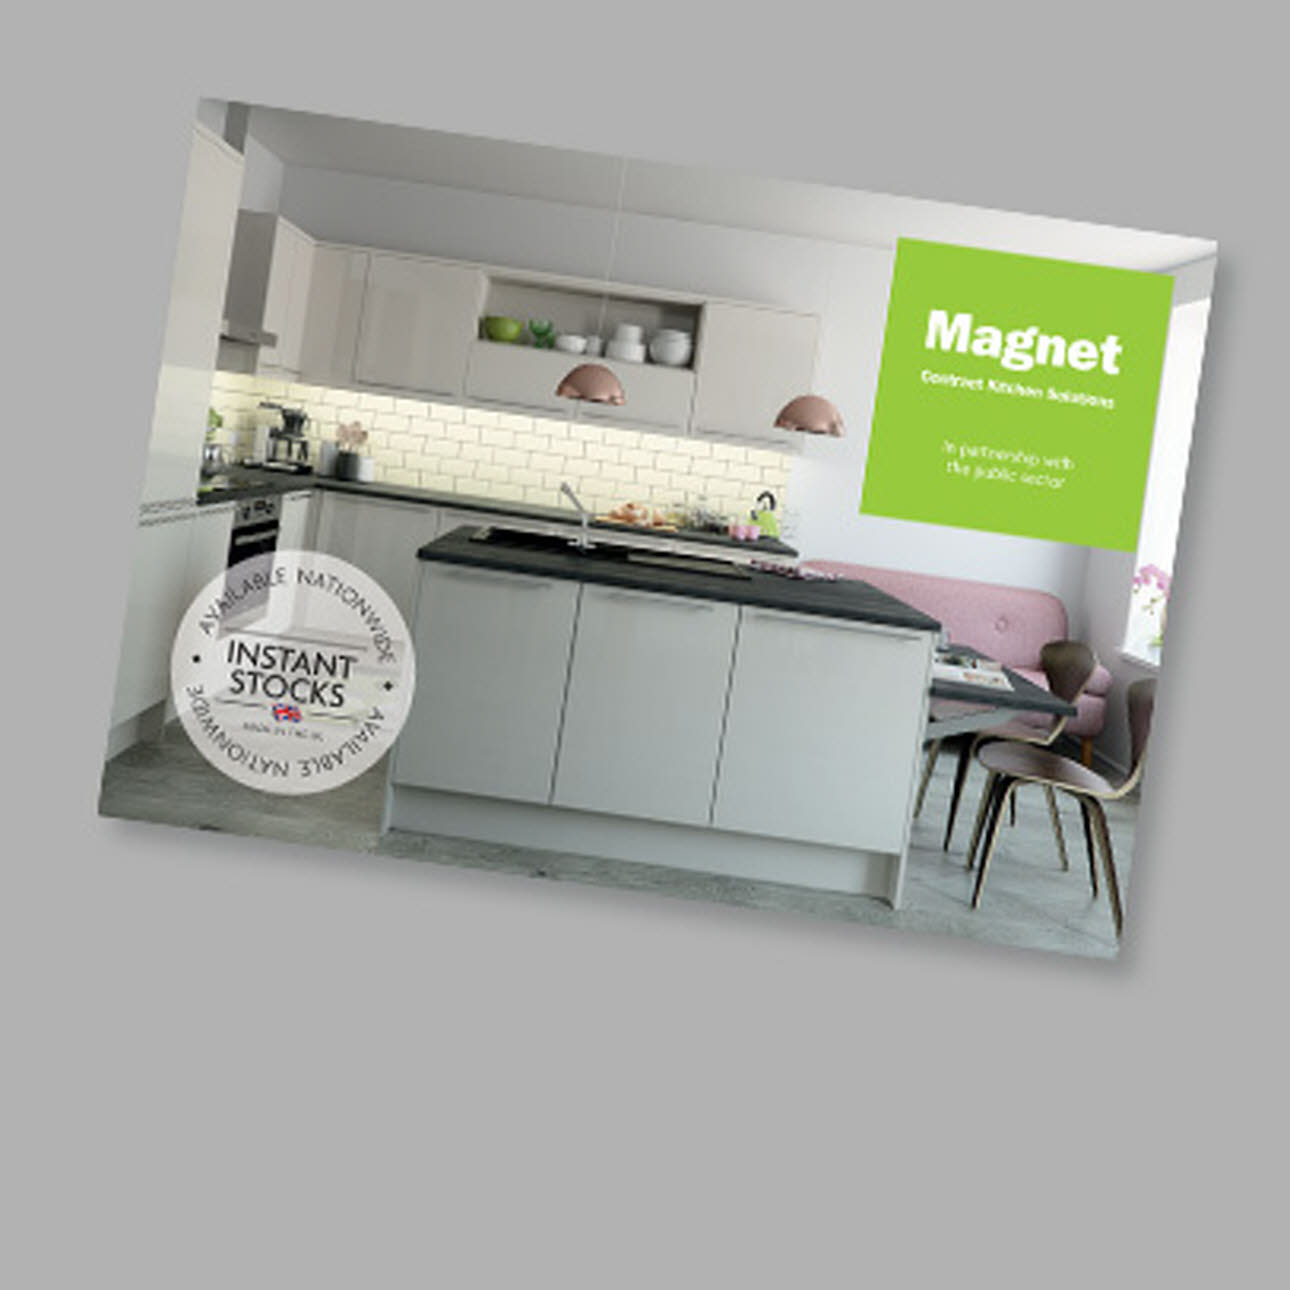 Contract Kitchens From Magnet Trade